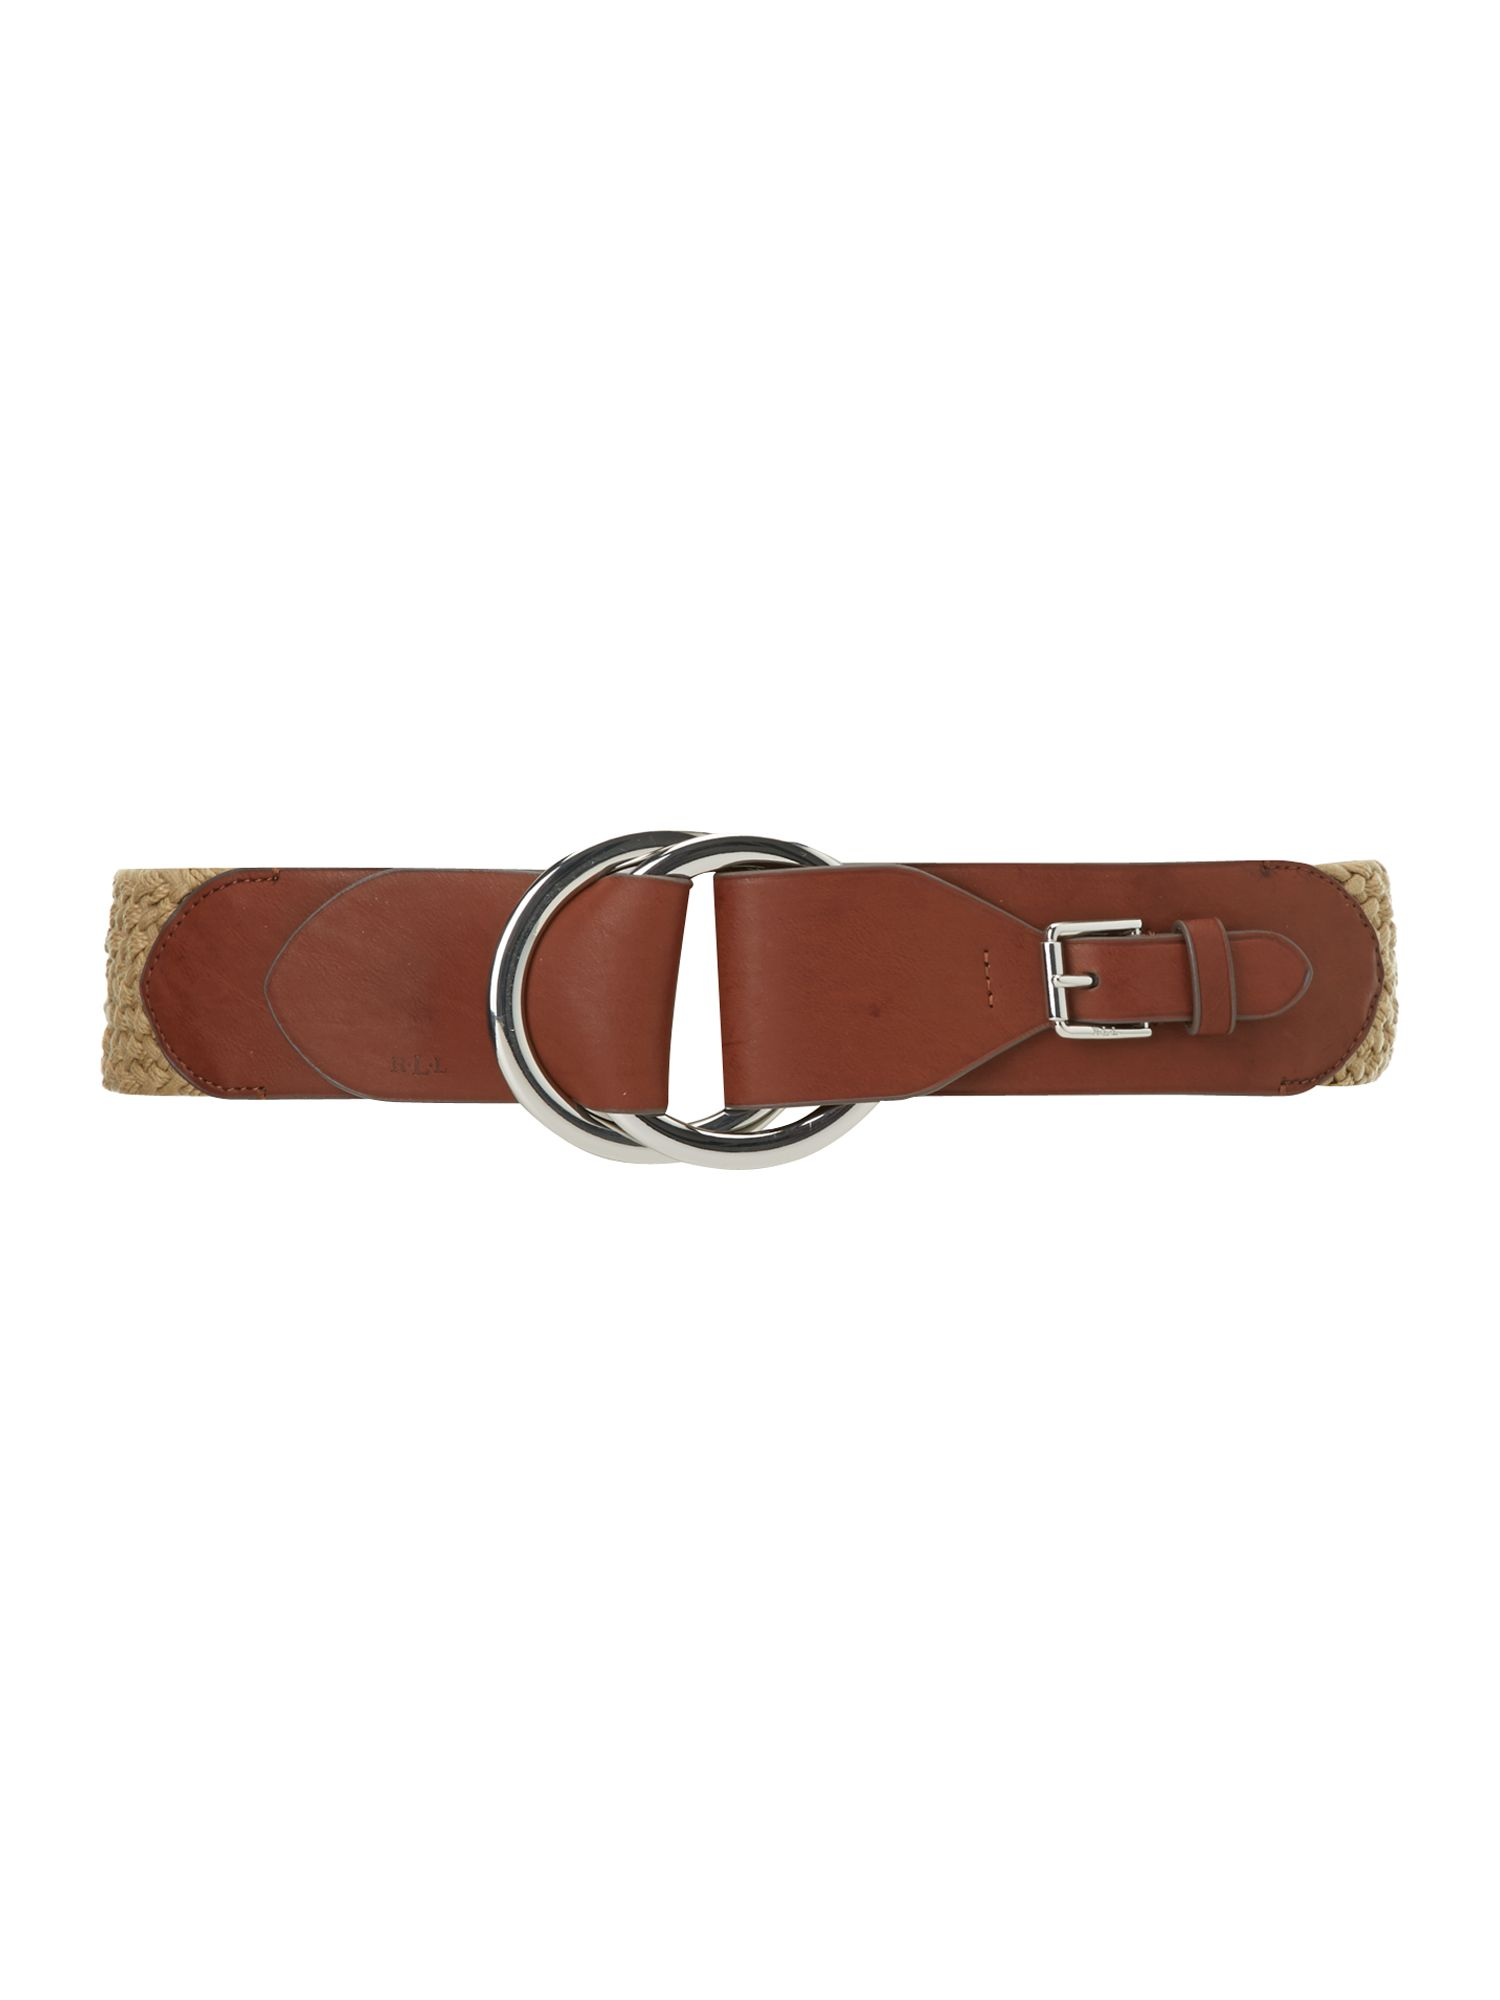 Cord belt with leather tab